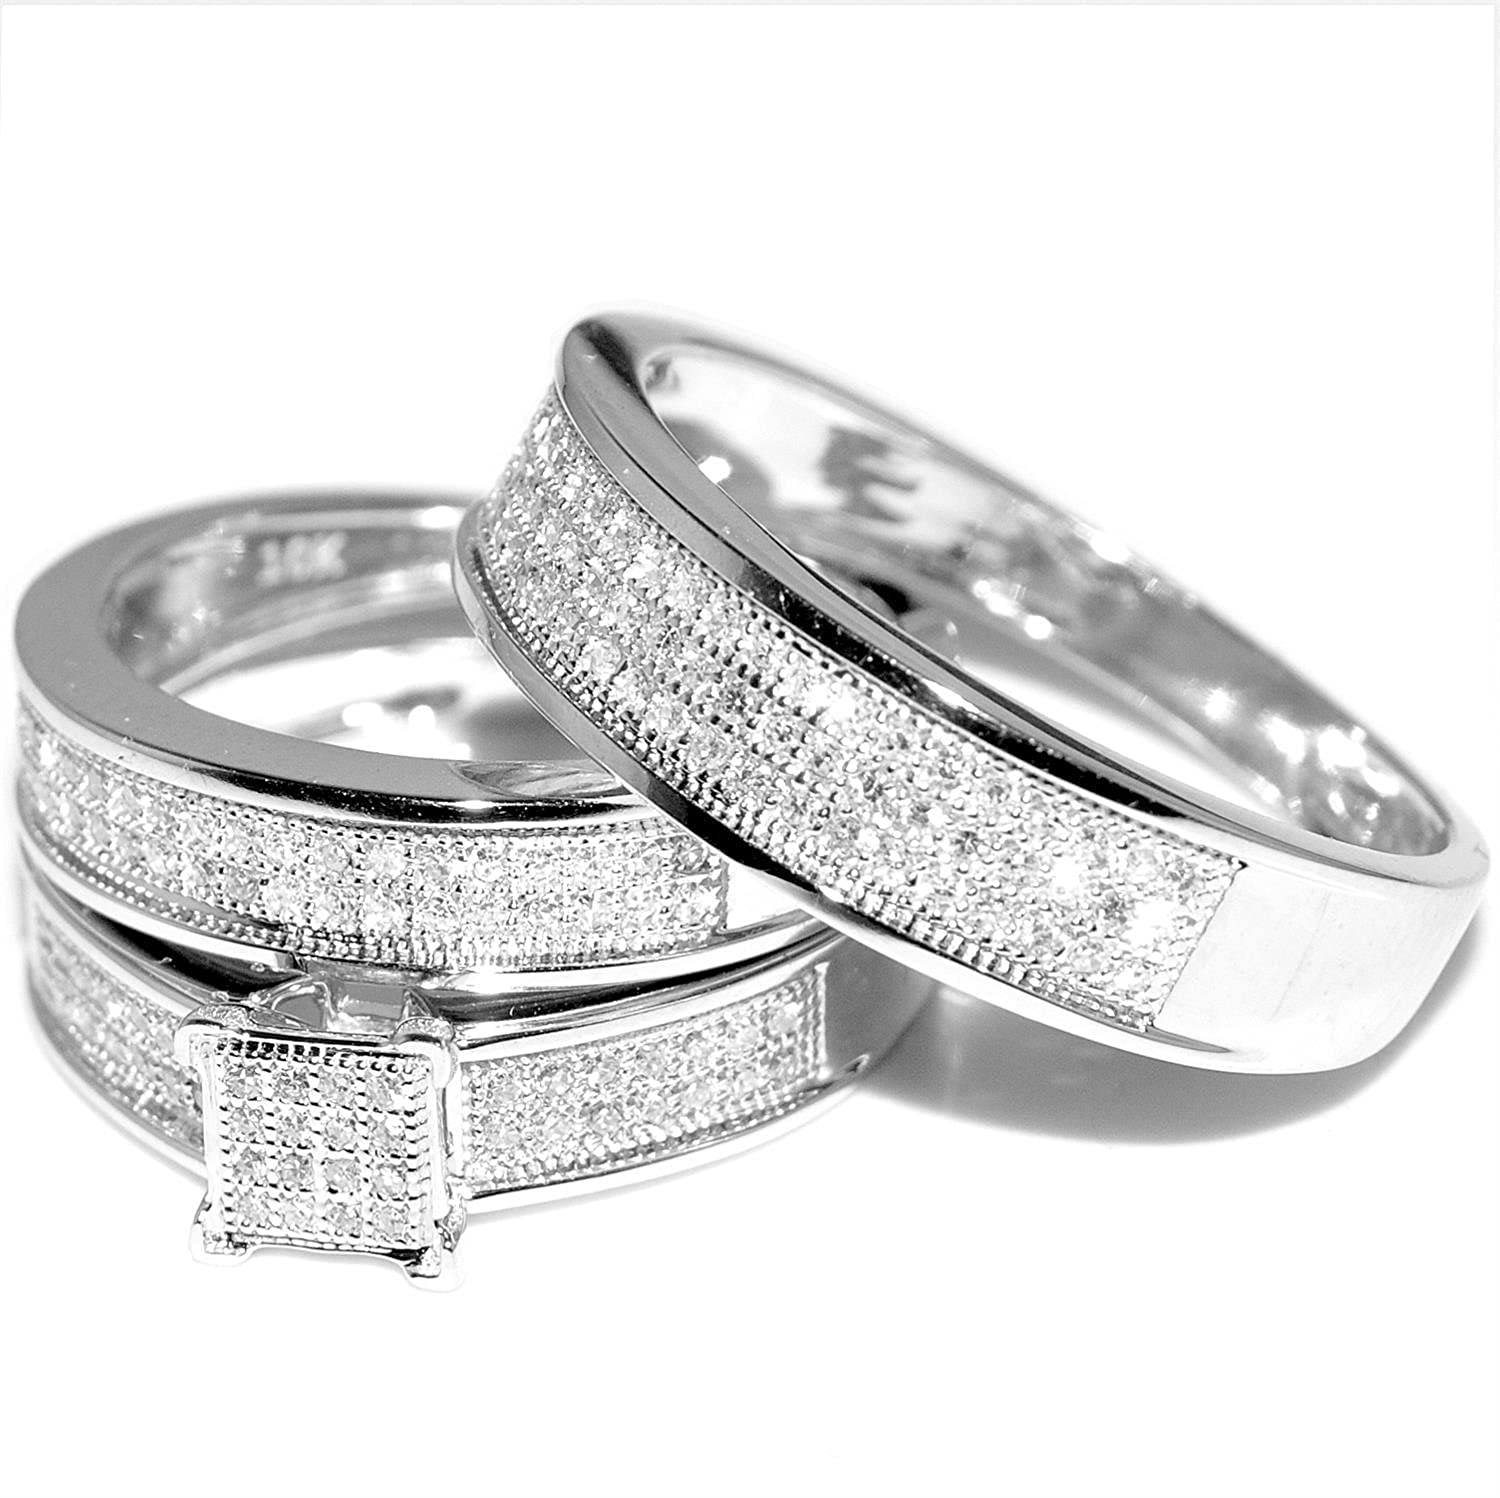 bands band htm ring from white the platinum wedding gold rings dress sets company